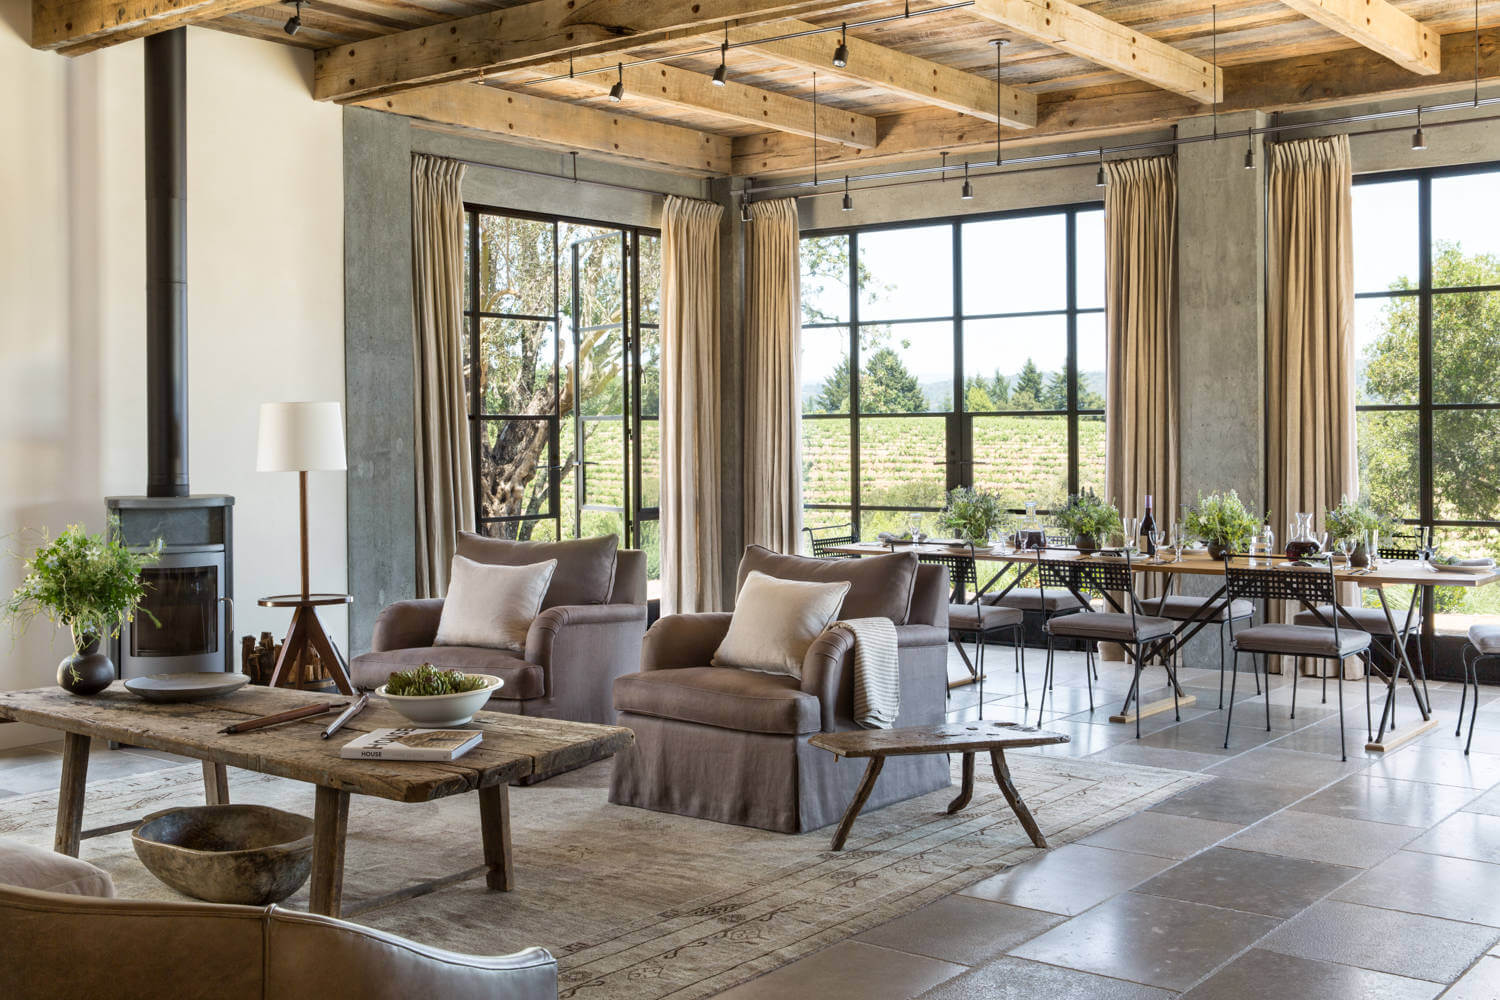 Healdsburg Ranch by Jute Interior Design | HomeAdore on contemporary office interior design, contemporary new york interior design, room corner fireplace design, wood interior design, marble interior design, contemporary electric fireplace designs, contemporary bedroom interior design, contemporary dining room interior design, contemporary style interior design, outdoor fireplaces interior design, contemporary fireplace decorating, contemporary fireplace with stone wall, contemporary kitchen interior design, contemporary fireplace storage, contemporary apartment interior design, contemporary high ceilings interior design, contemporary bathroom interior design, modern fireplace design, contemporary bar interior design, contemporary luxury home interior design,